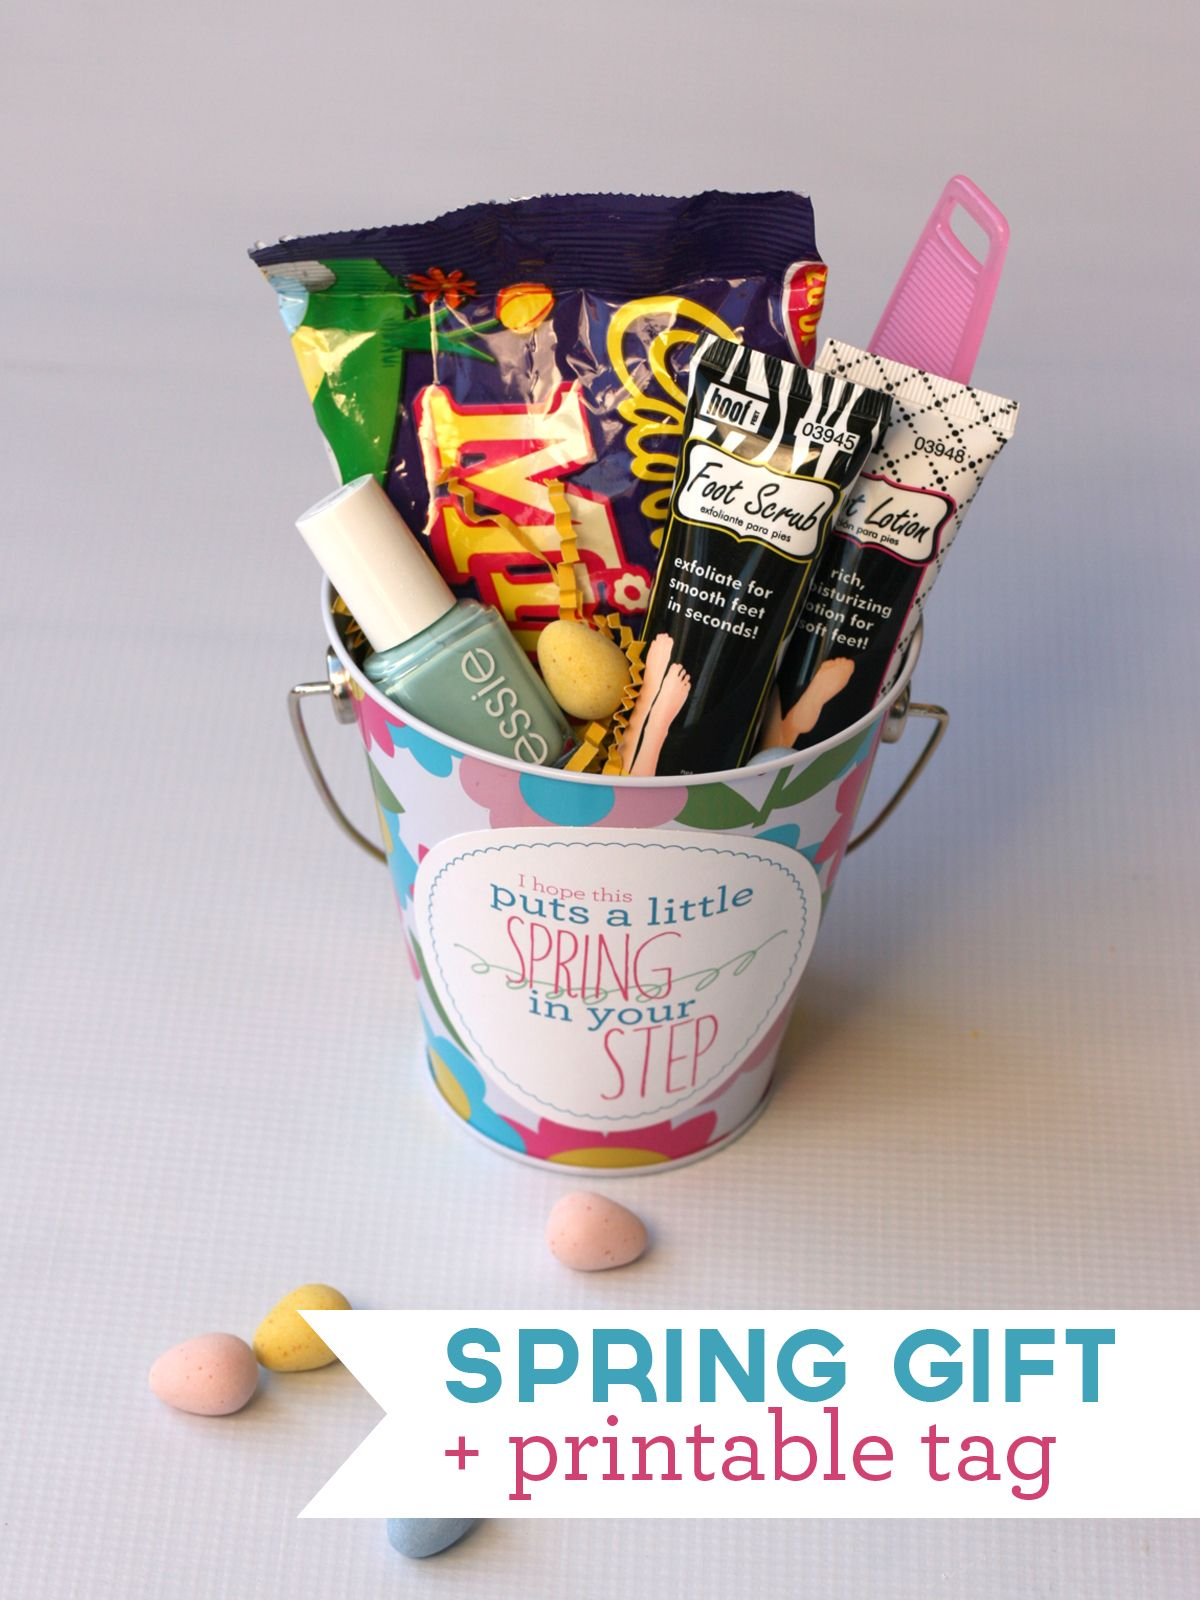 Spring gift idea and printable tag printable tags suitcase and spring my sisters suitcase spring gift idea and printable tag this would be a sweet little gift to pop in the mail for a loved one negle Gallery